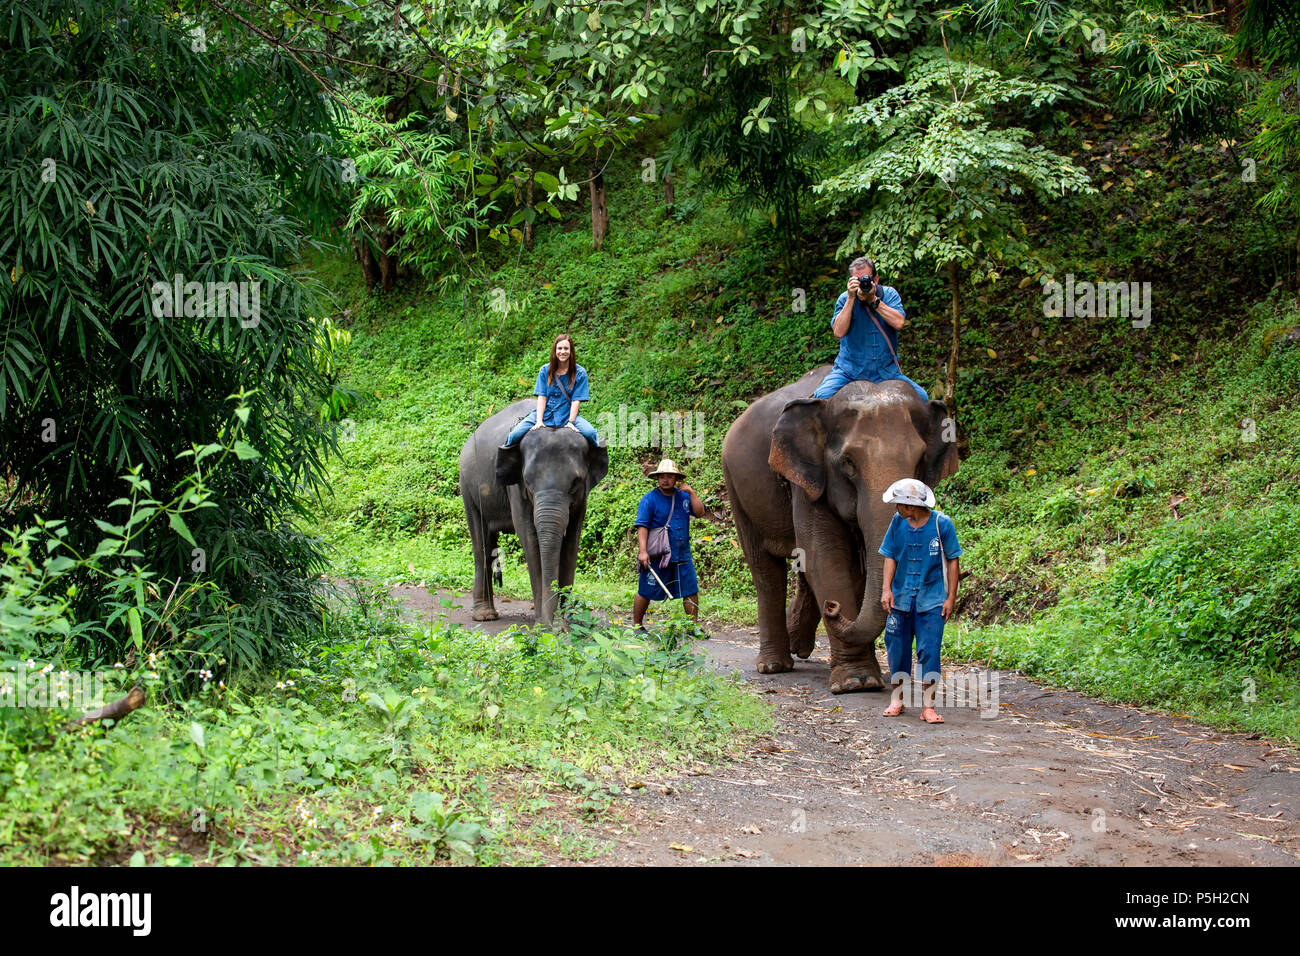 People riding Asian elephants (Elephas maximus) in jungle trail, Thai Elephant Home elephant farm, Keudchang Maetang, Chiang Mai, Thailand - Stock Image